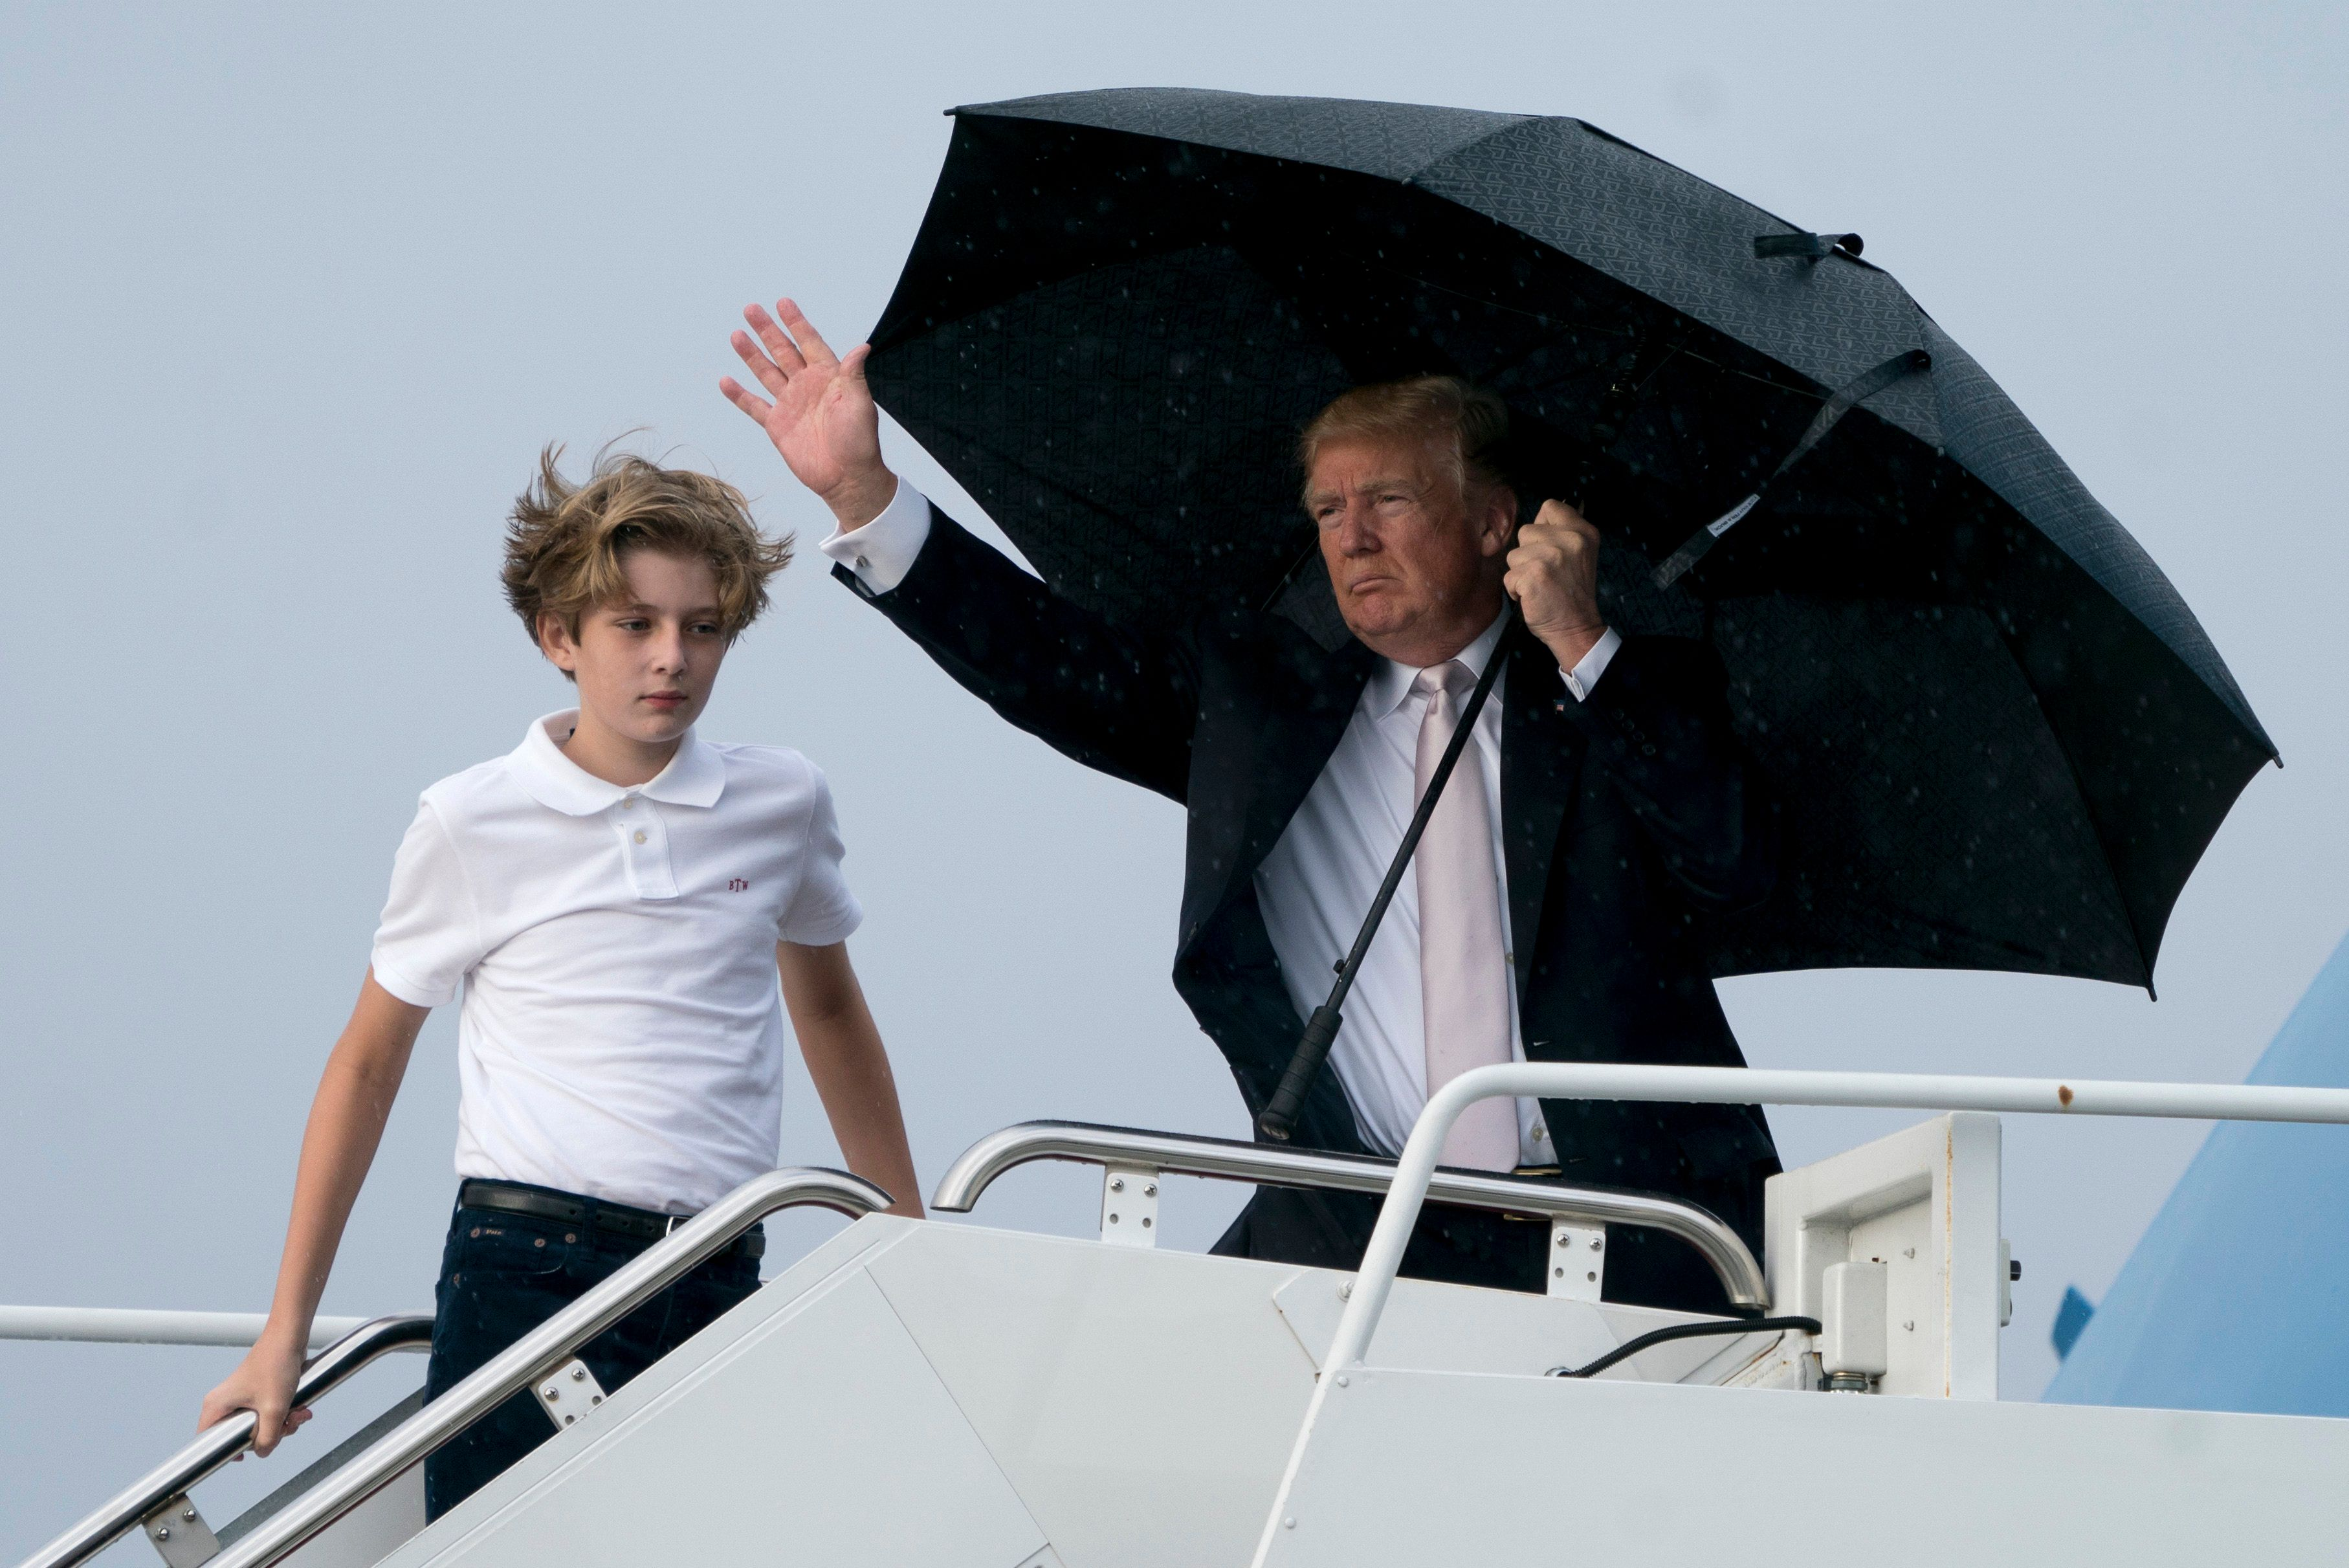 Trump Says He Would 'Have A Hard Time' If Son Barron Played